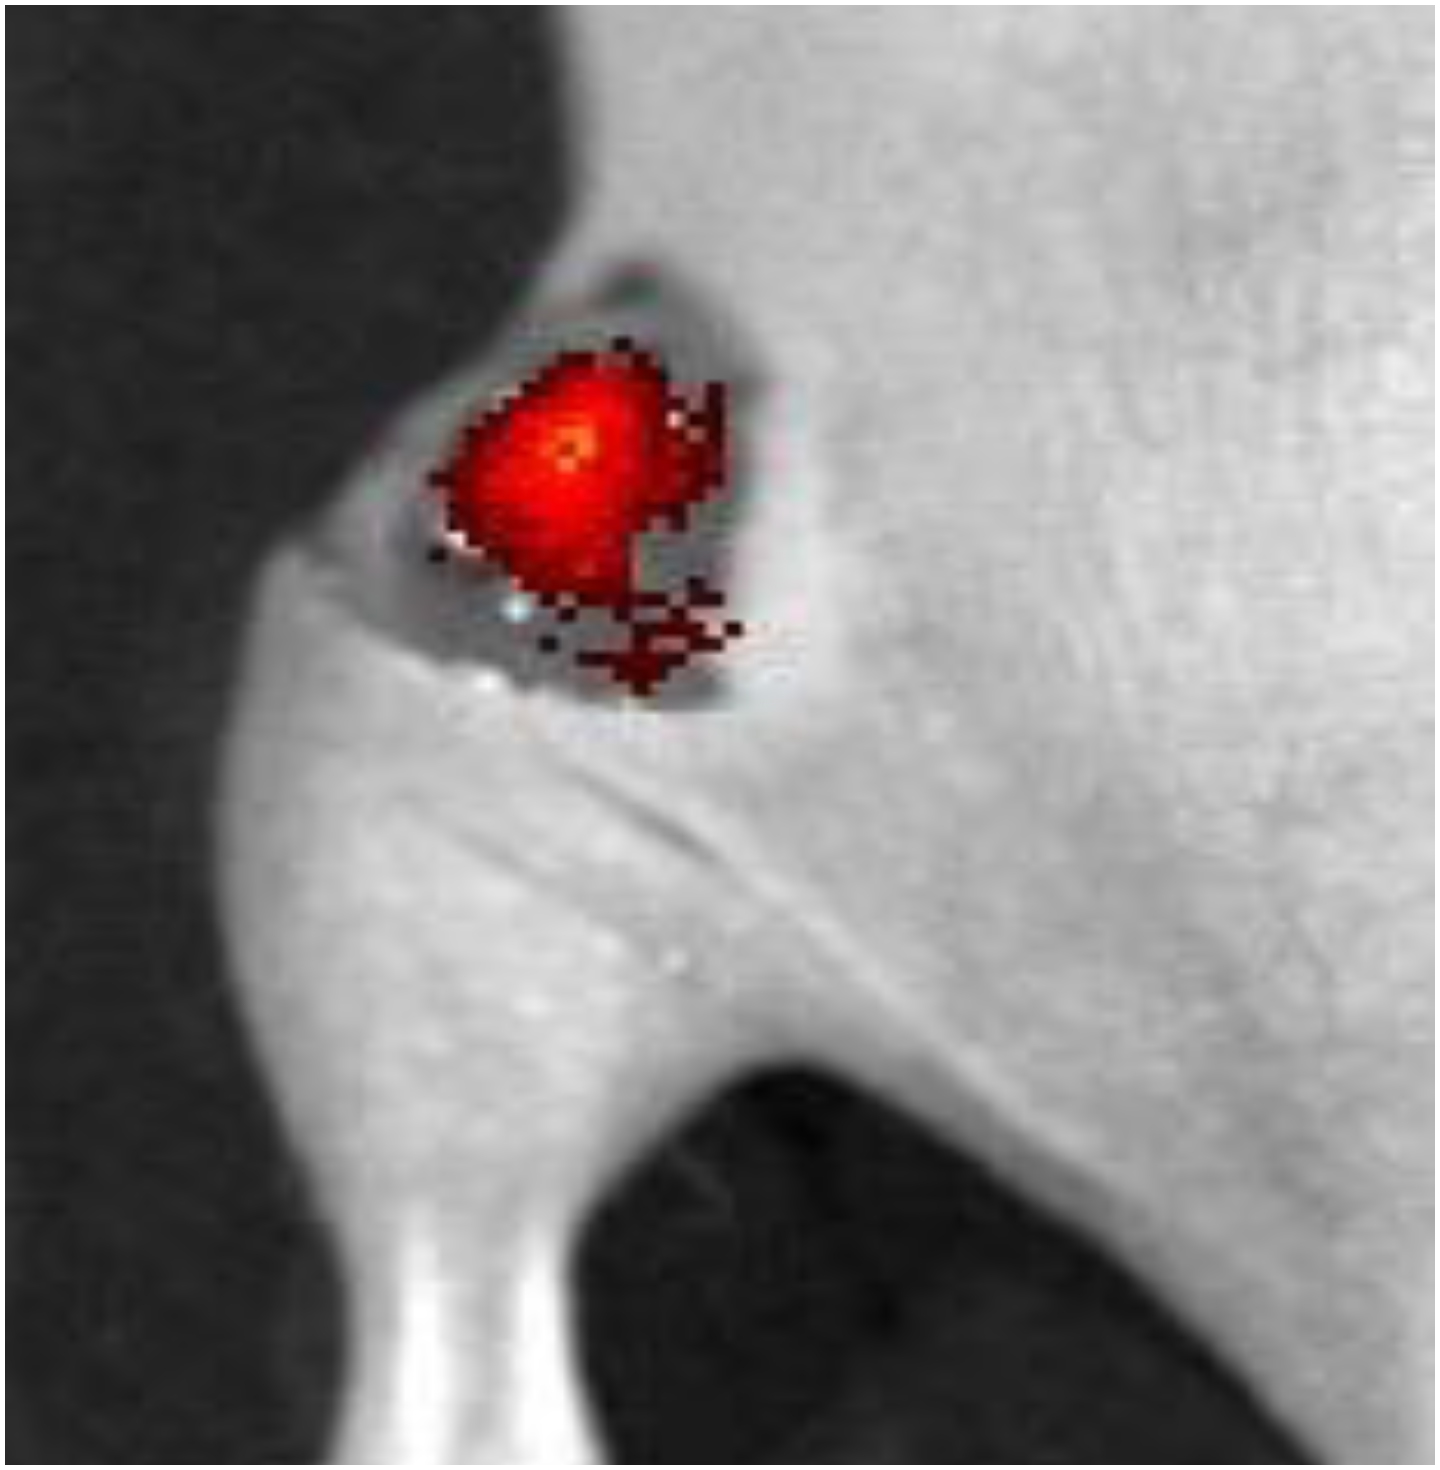 A fluorescent probe reveals cancerous tissue (red) 1 minute after being sprayed on a surgical site in a mouse. Credit: Adapted from ACS Sensors 2021, DOI: 10.1021/acssensors.1c01370